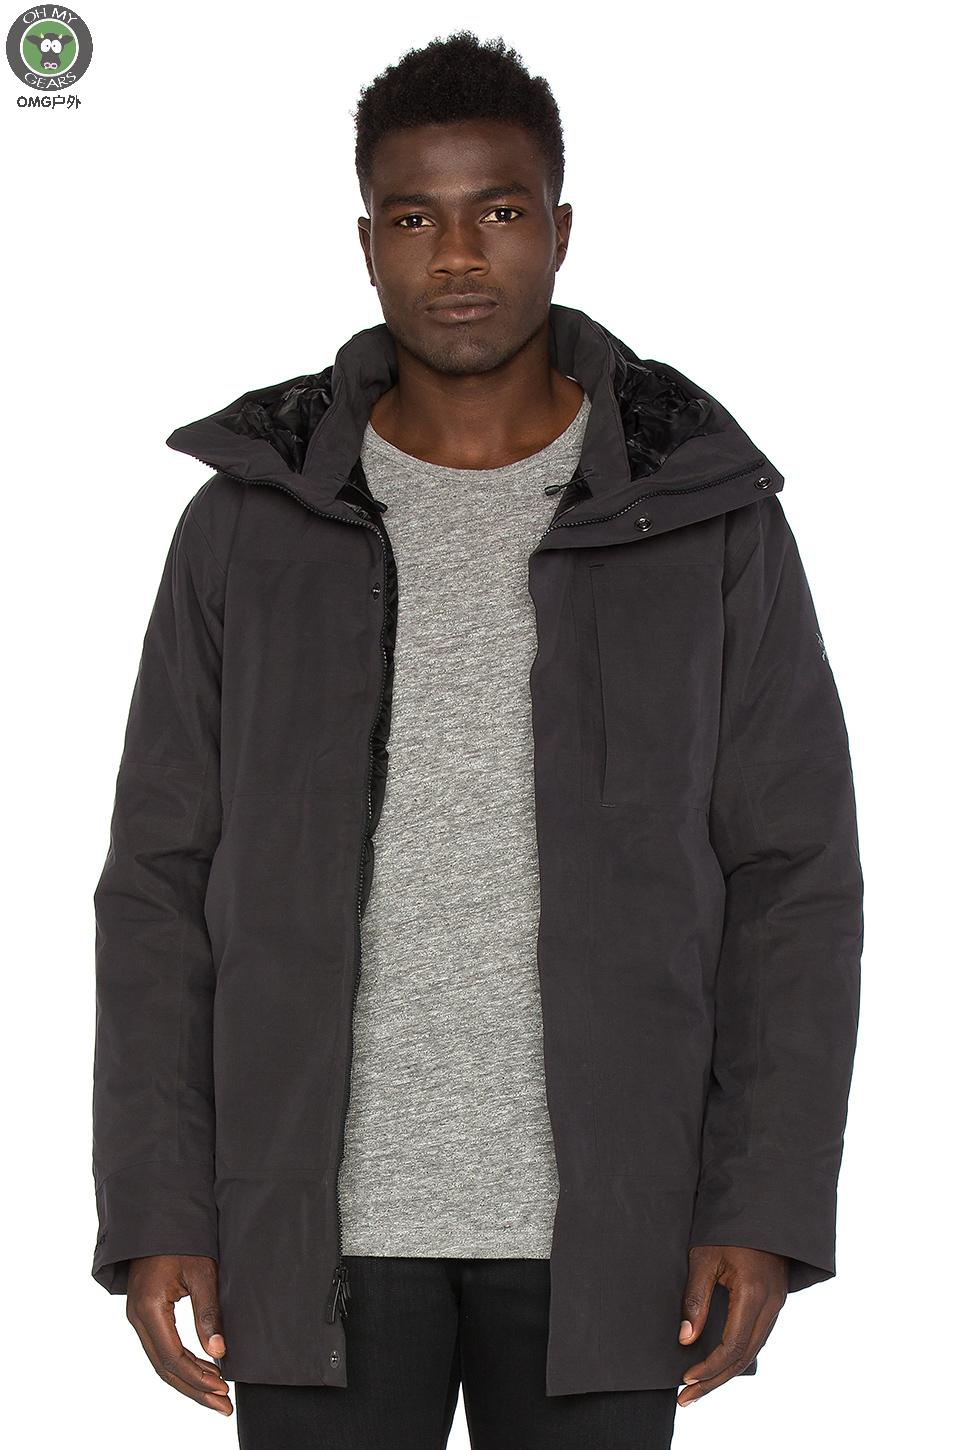 3c285b93217 Arcteryx Therme Parka Archaeopteryx men's business waterproof down ...